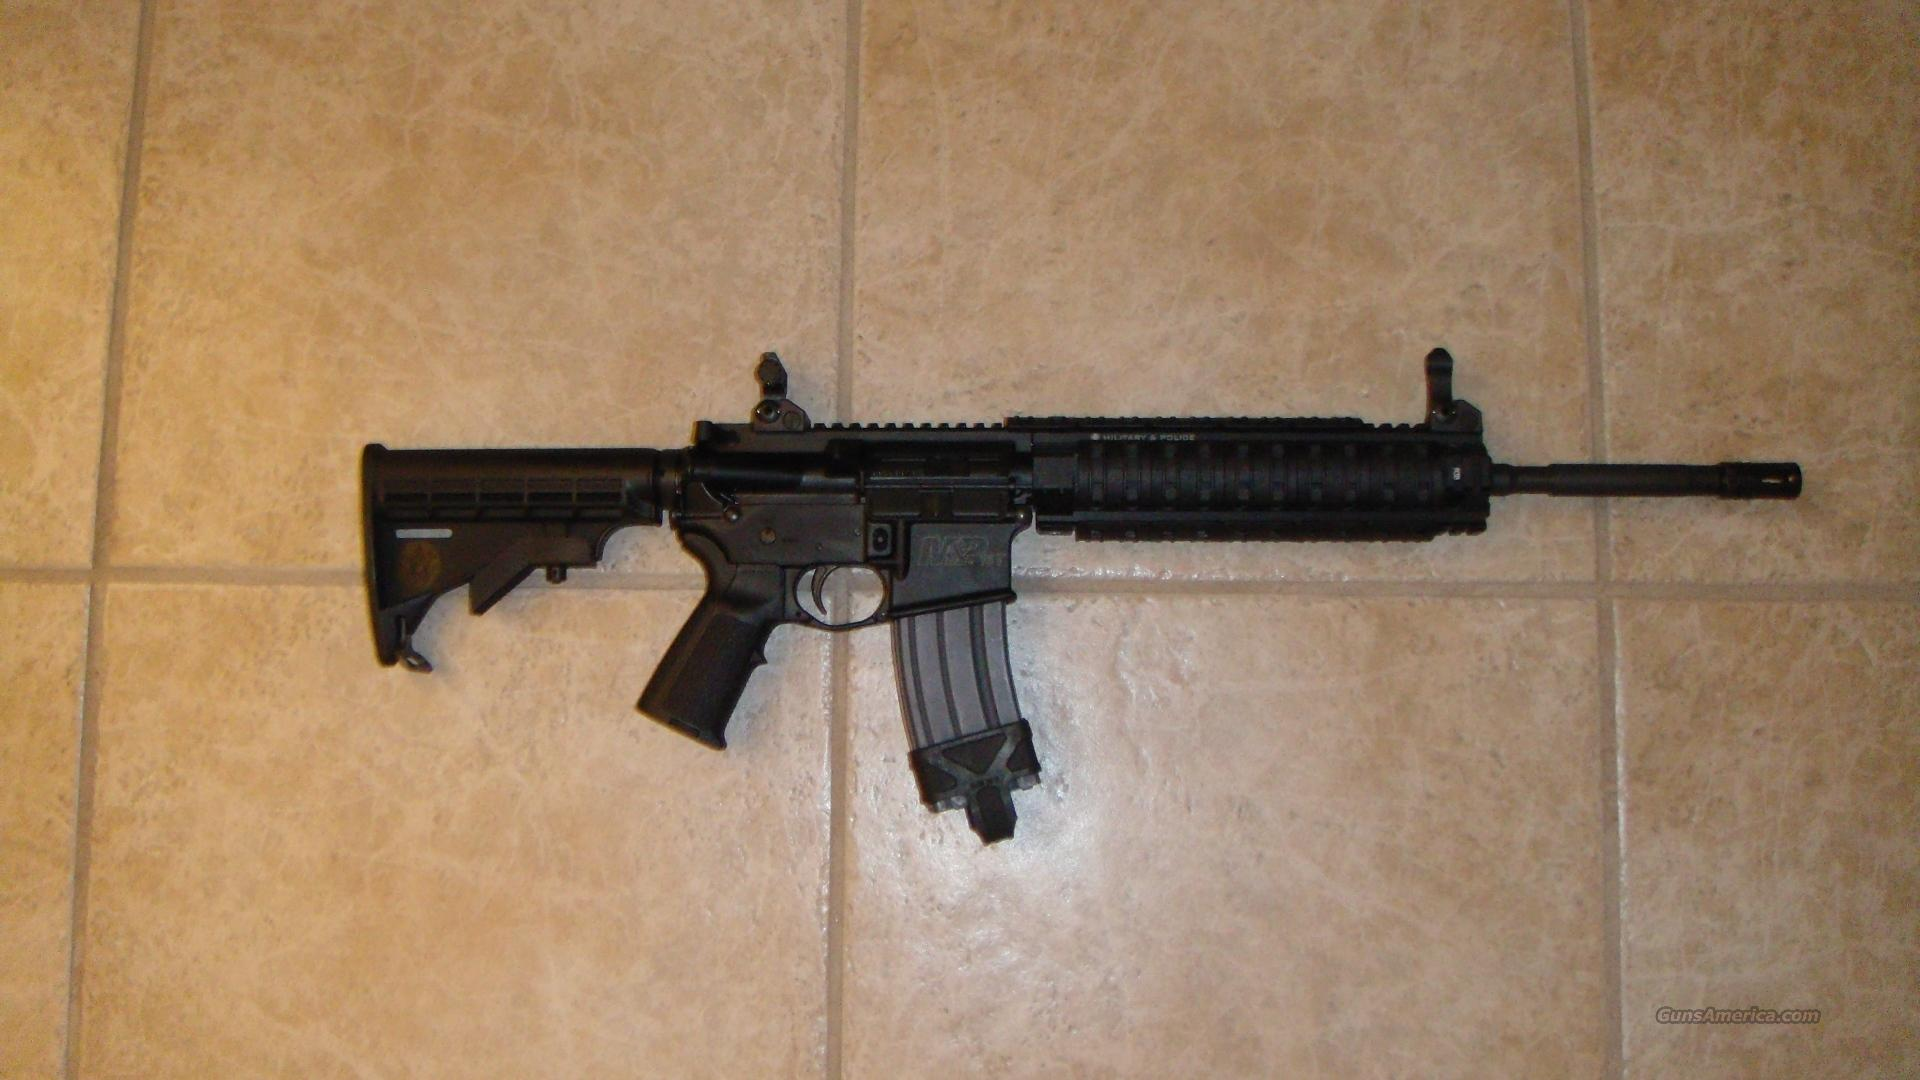 Smith & Wesson M&P15 Tactical AR-15  Guns > Rifles > Smith & Wesson Rifles > M&P